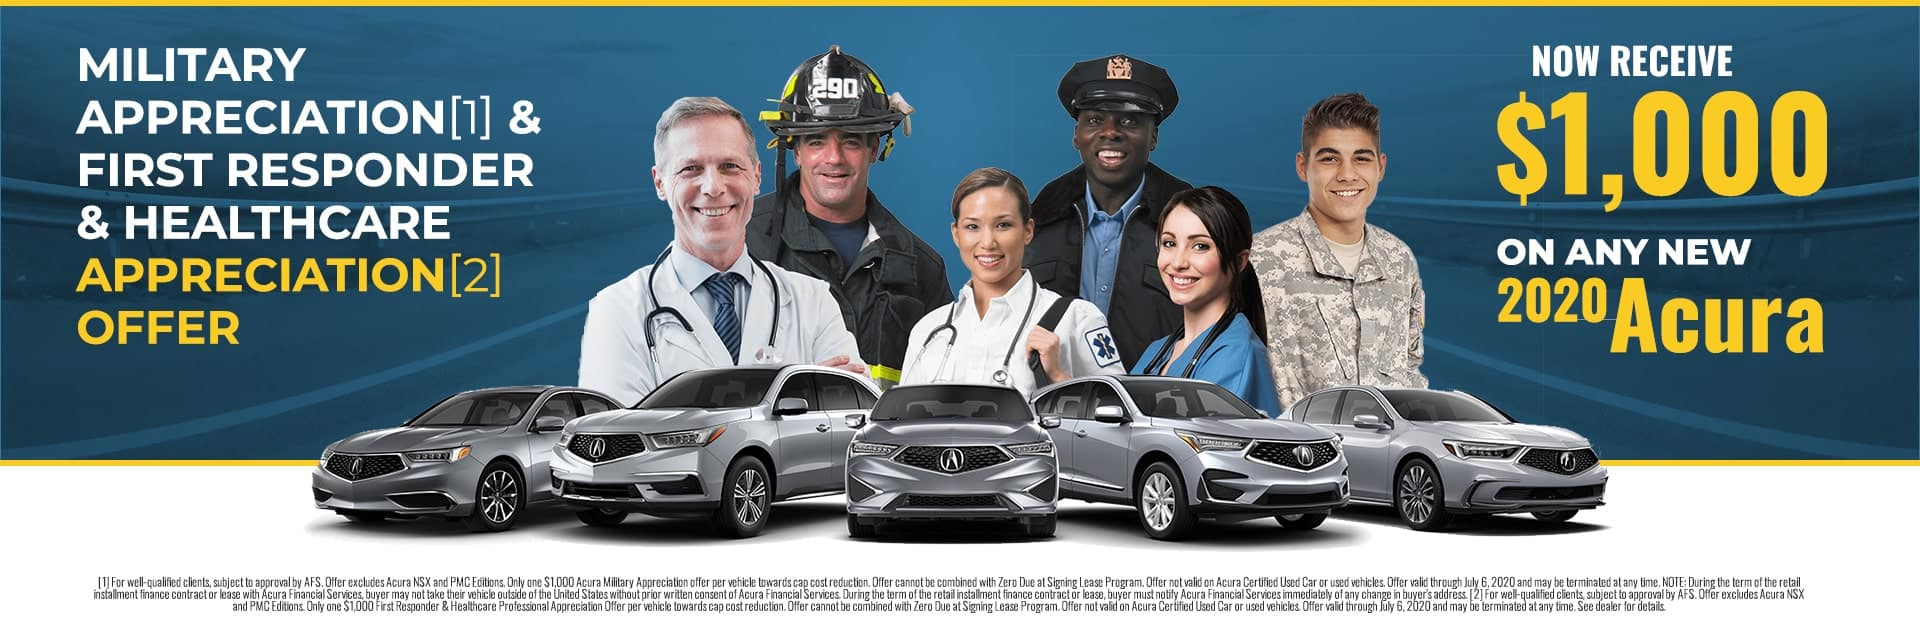 First Responders & Military get $1000 on new 2020 Acura